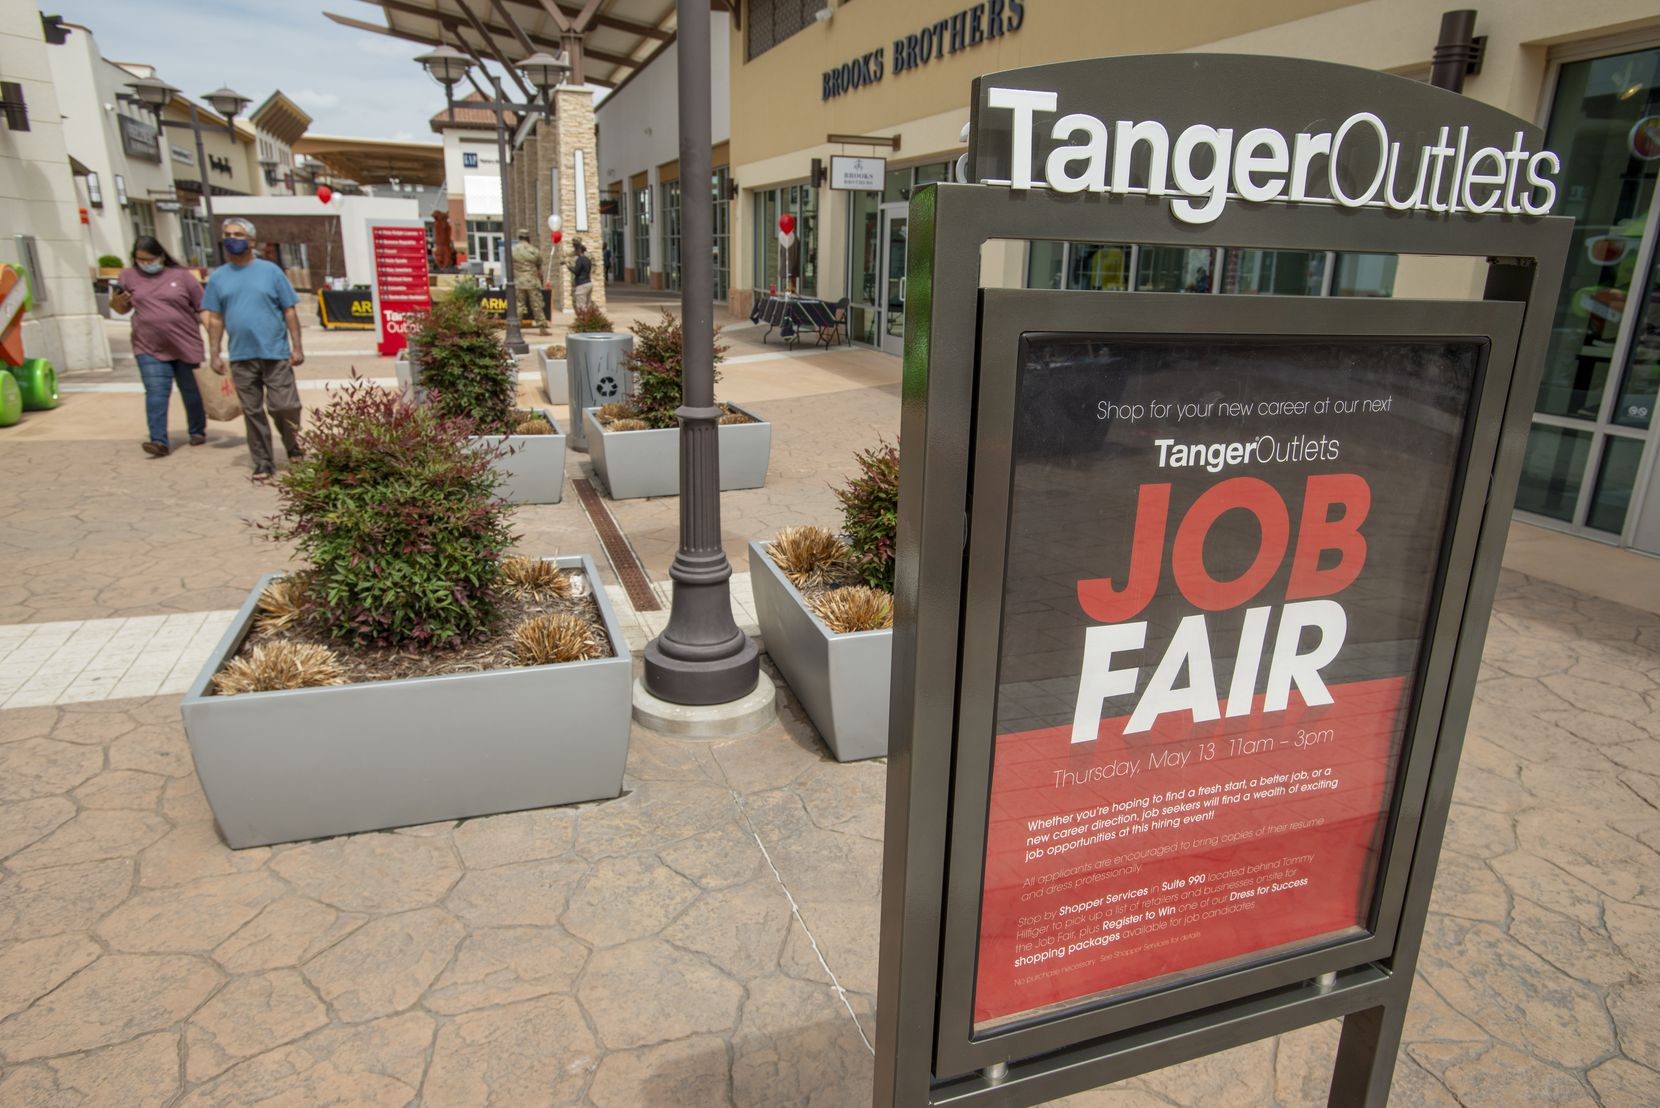 Tanger Outlets hosts a a job fair at Fort Worth, Texas location on May 13, 2021. (Robert W. Hart/Special Contributor)